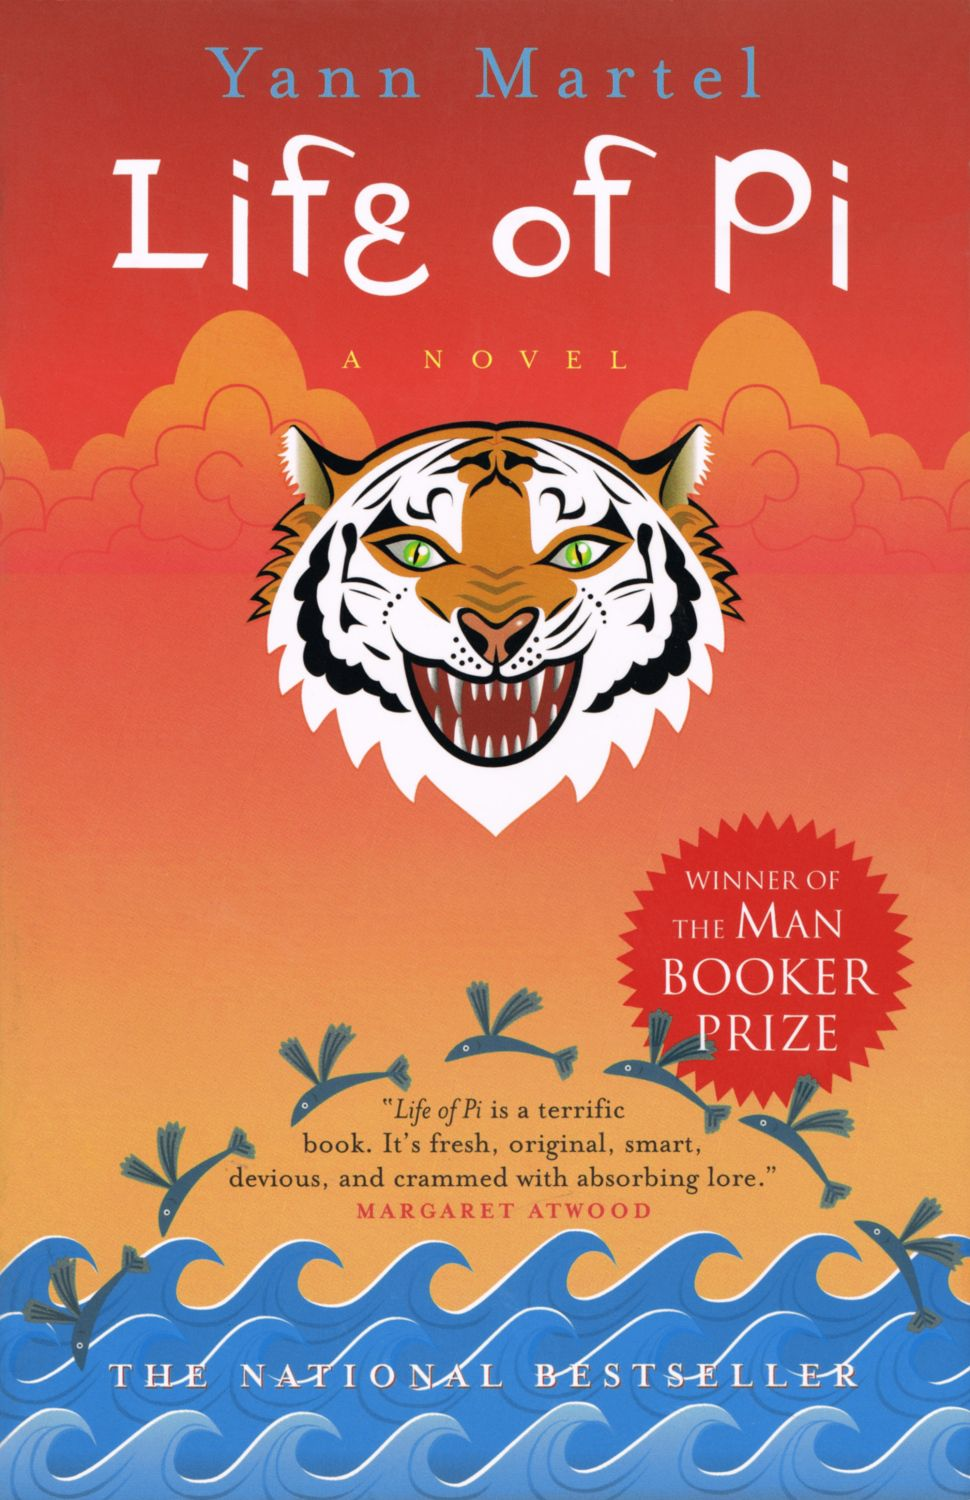 essay on life of pi Life of pi analytical essay in the novel life of pi, yann martel uses the protagonist pi to demonstrate how faith, ritual and one's will to live save one from the barbaric and carnivorous reality.